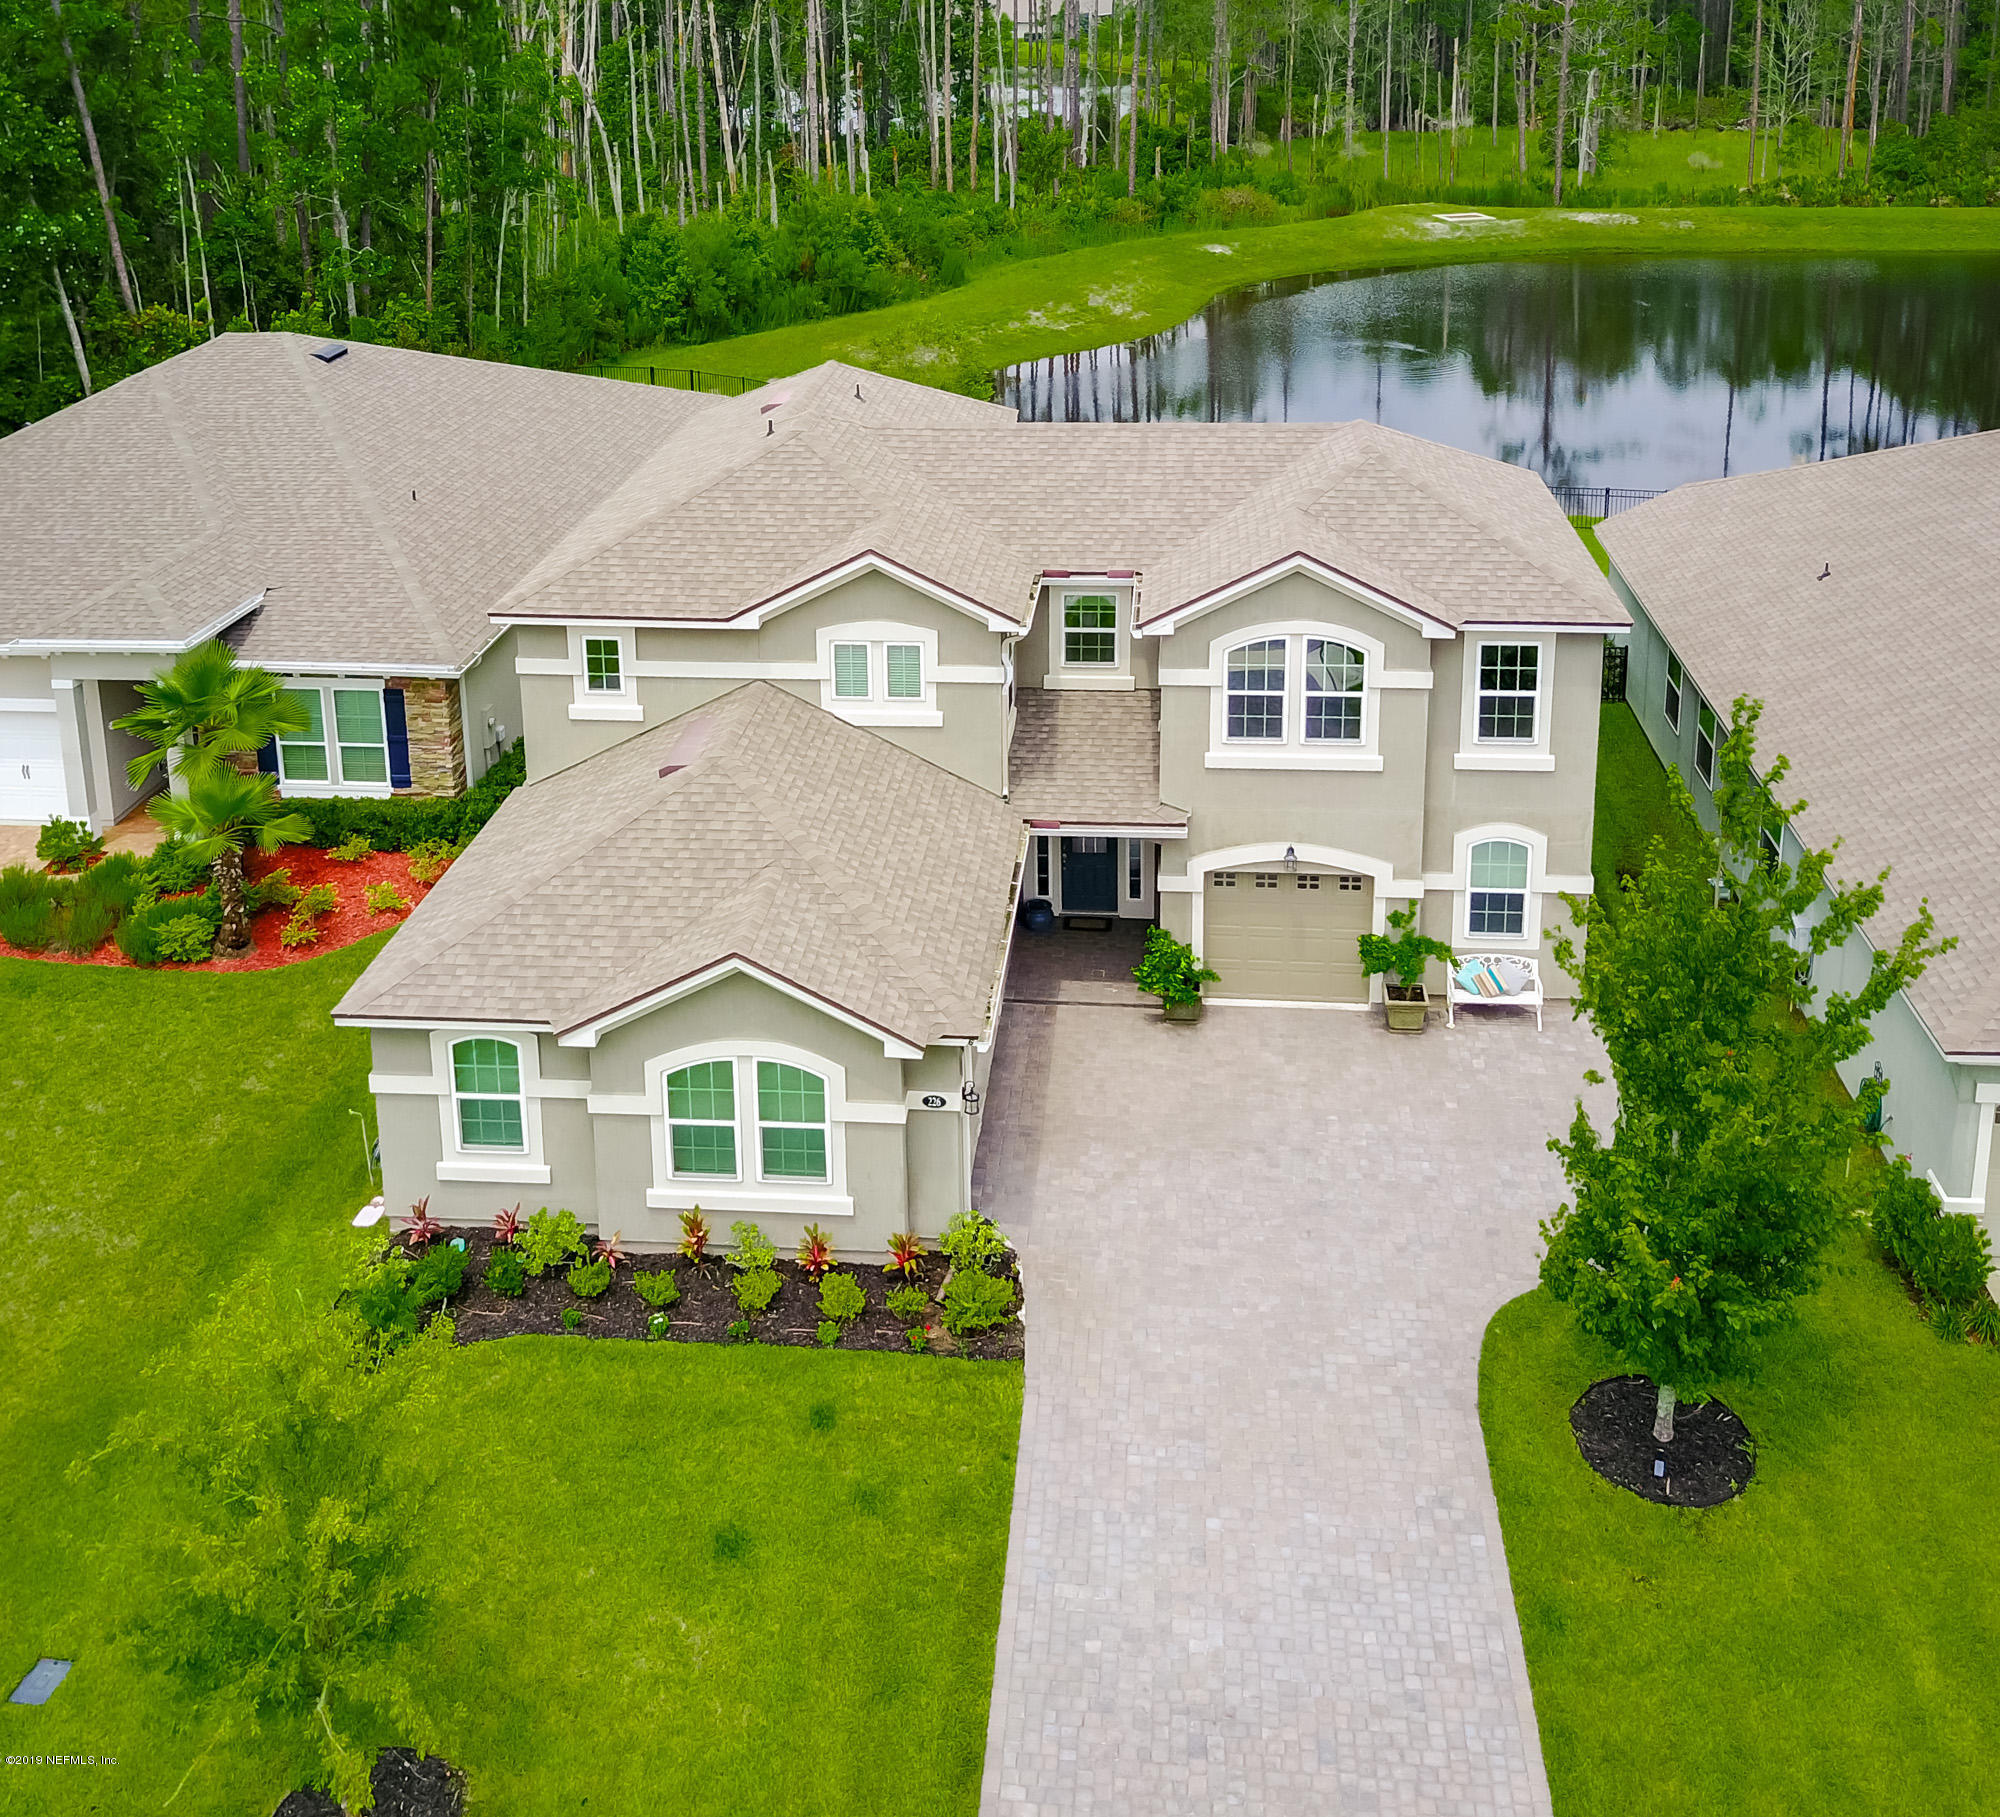 226 STONY FORD, PONTE VEDRA, FLORIDA 32081, 5 Bedrooms Bedrooms, ,3 BathroomsBathrooms,Residential - single family,For sale,STONY FORD,1004492